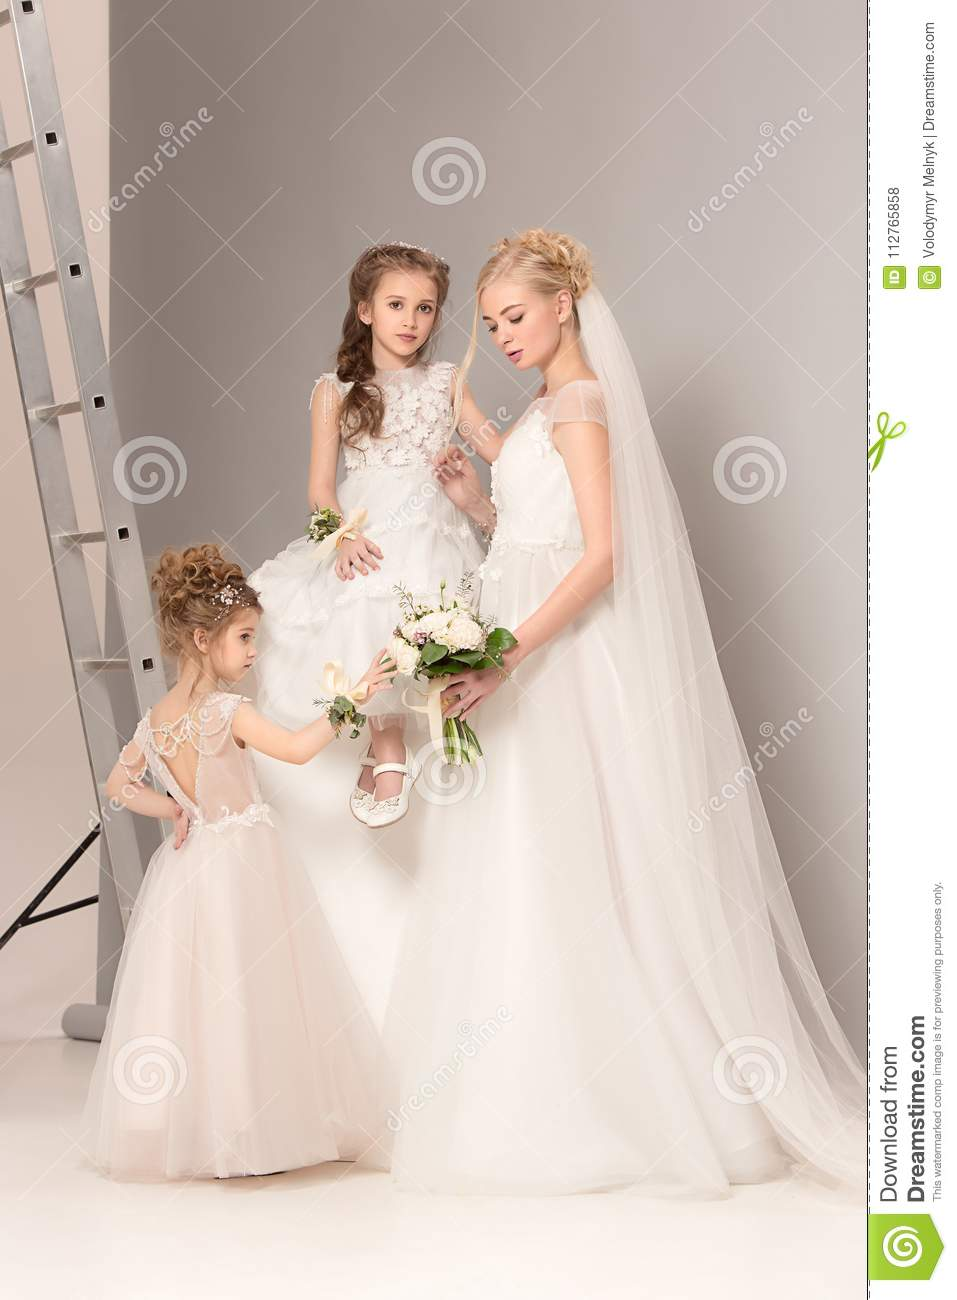 Dresses wedding with sleeves in cute concepts exclusive photo